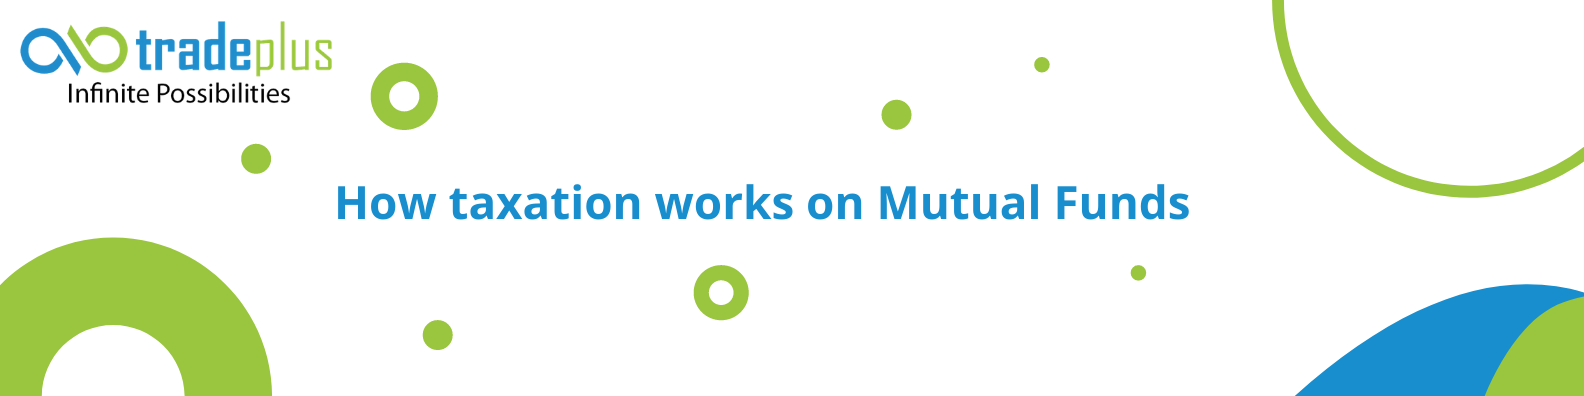 How taxation works on mutual funds 1 How taxation works on Mutual Funds in India